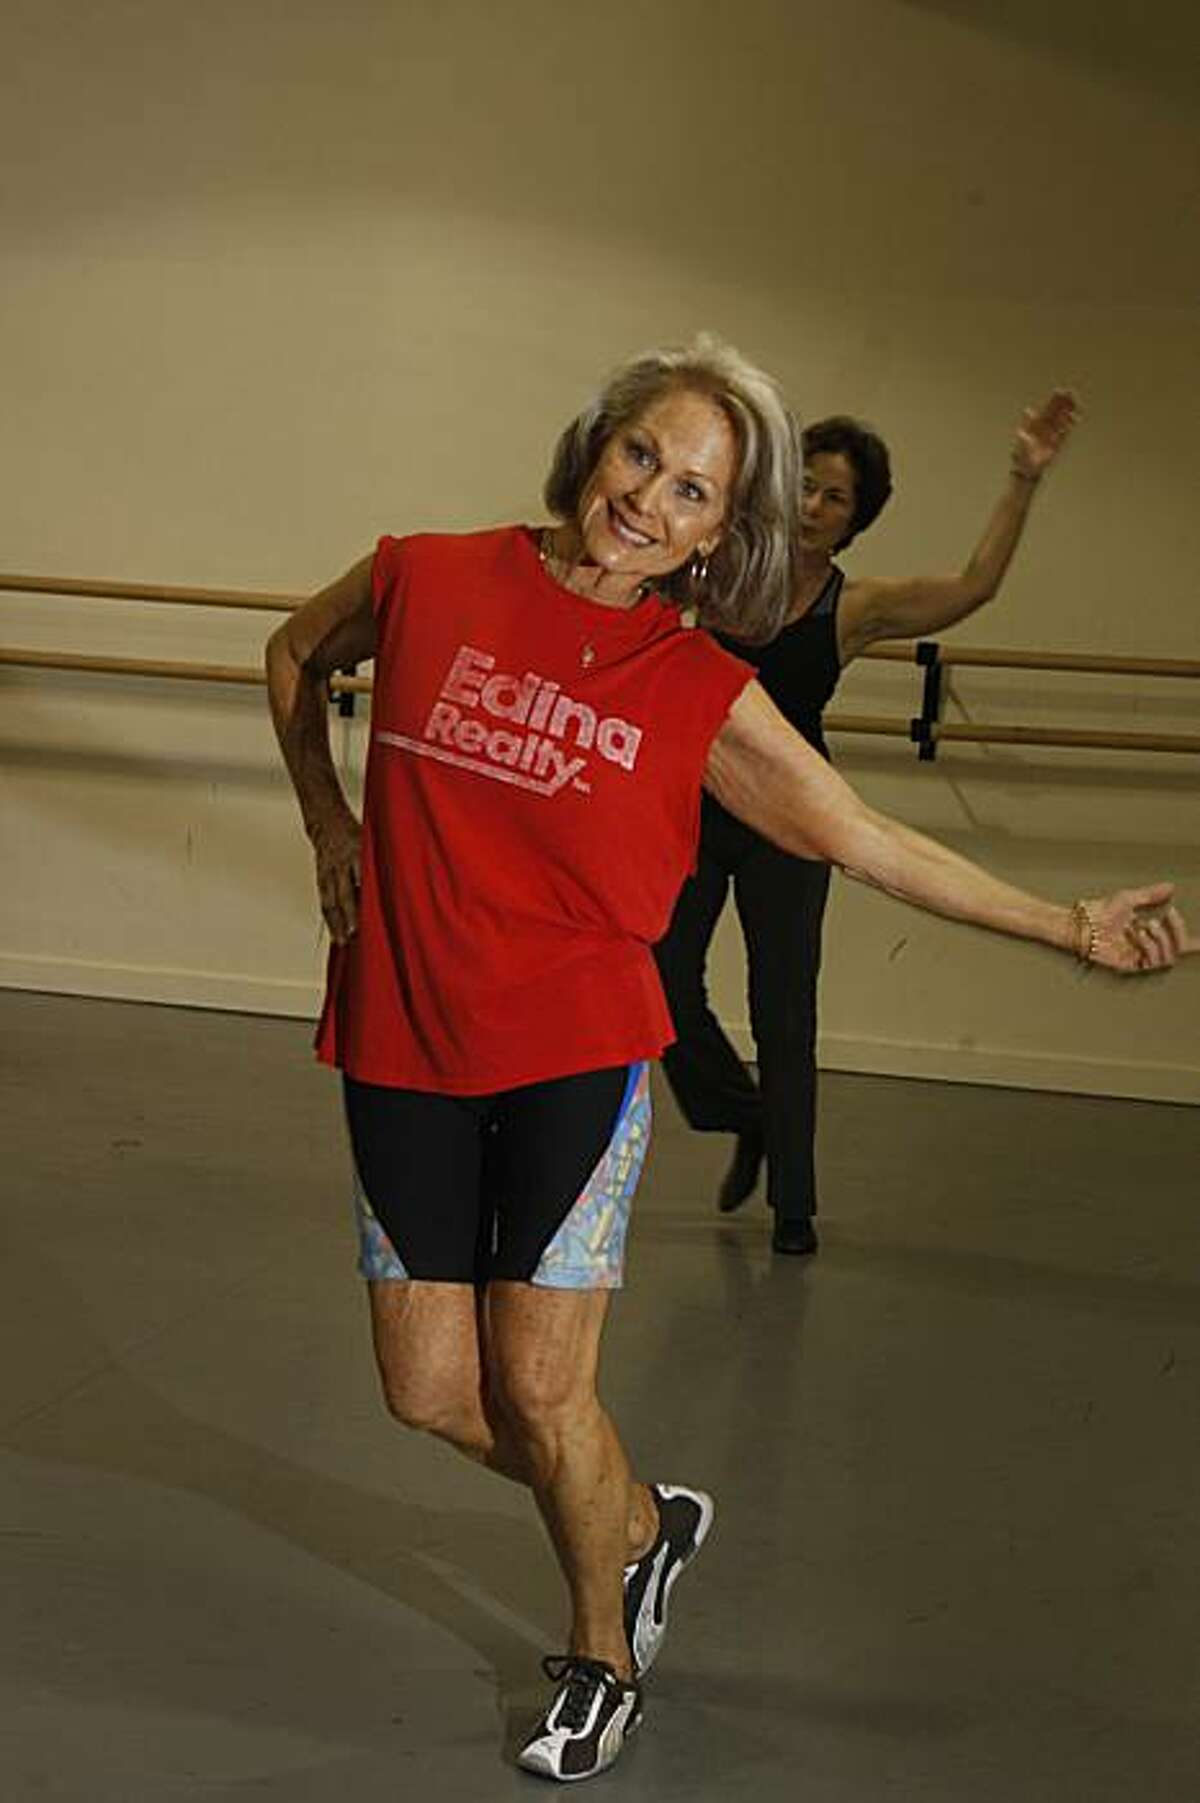 Willow Carter (foreground) wears her customary Pumas and cut off muscle shirt while working out in her Boomercize class at the Presidio Dance Theatre in San Francisco, Calif. on Monday December 14, 2009.